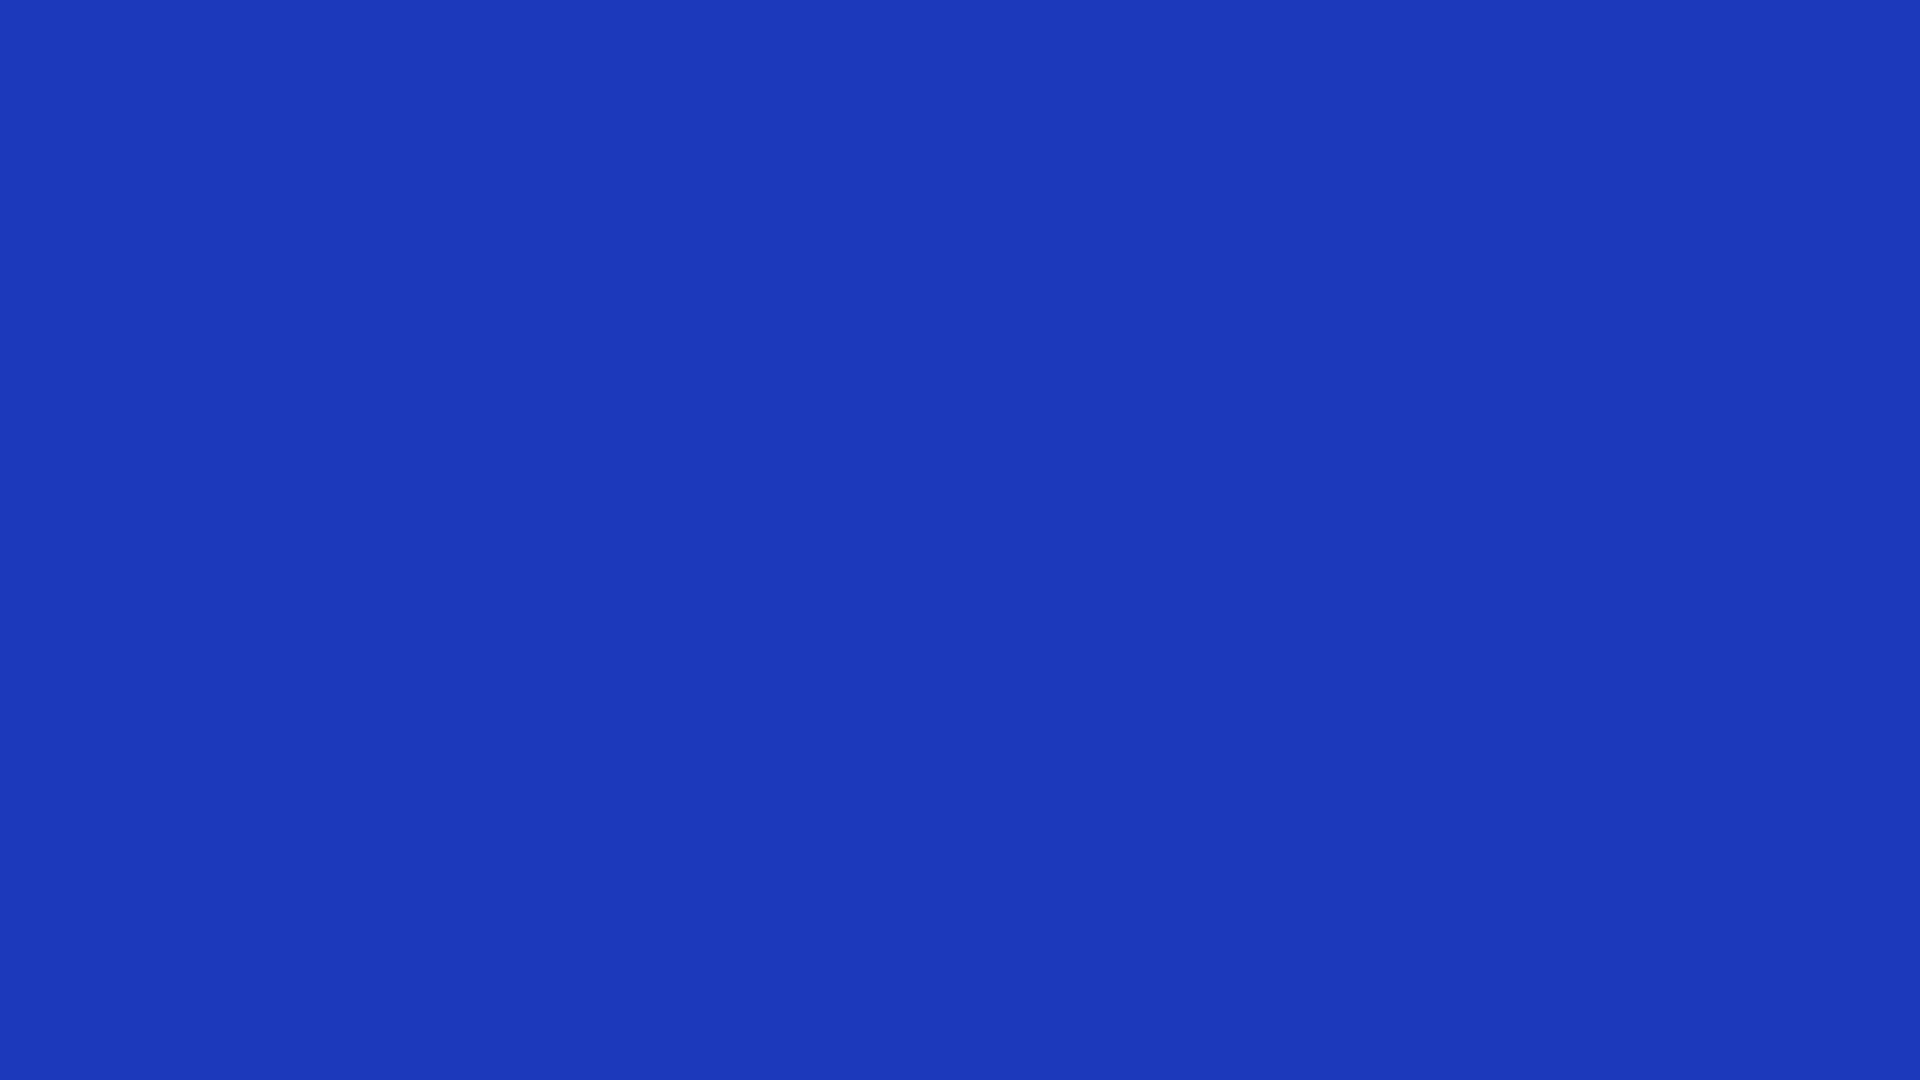 1920x1080 Persian Blue Solid Color Background